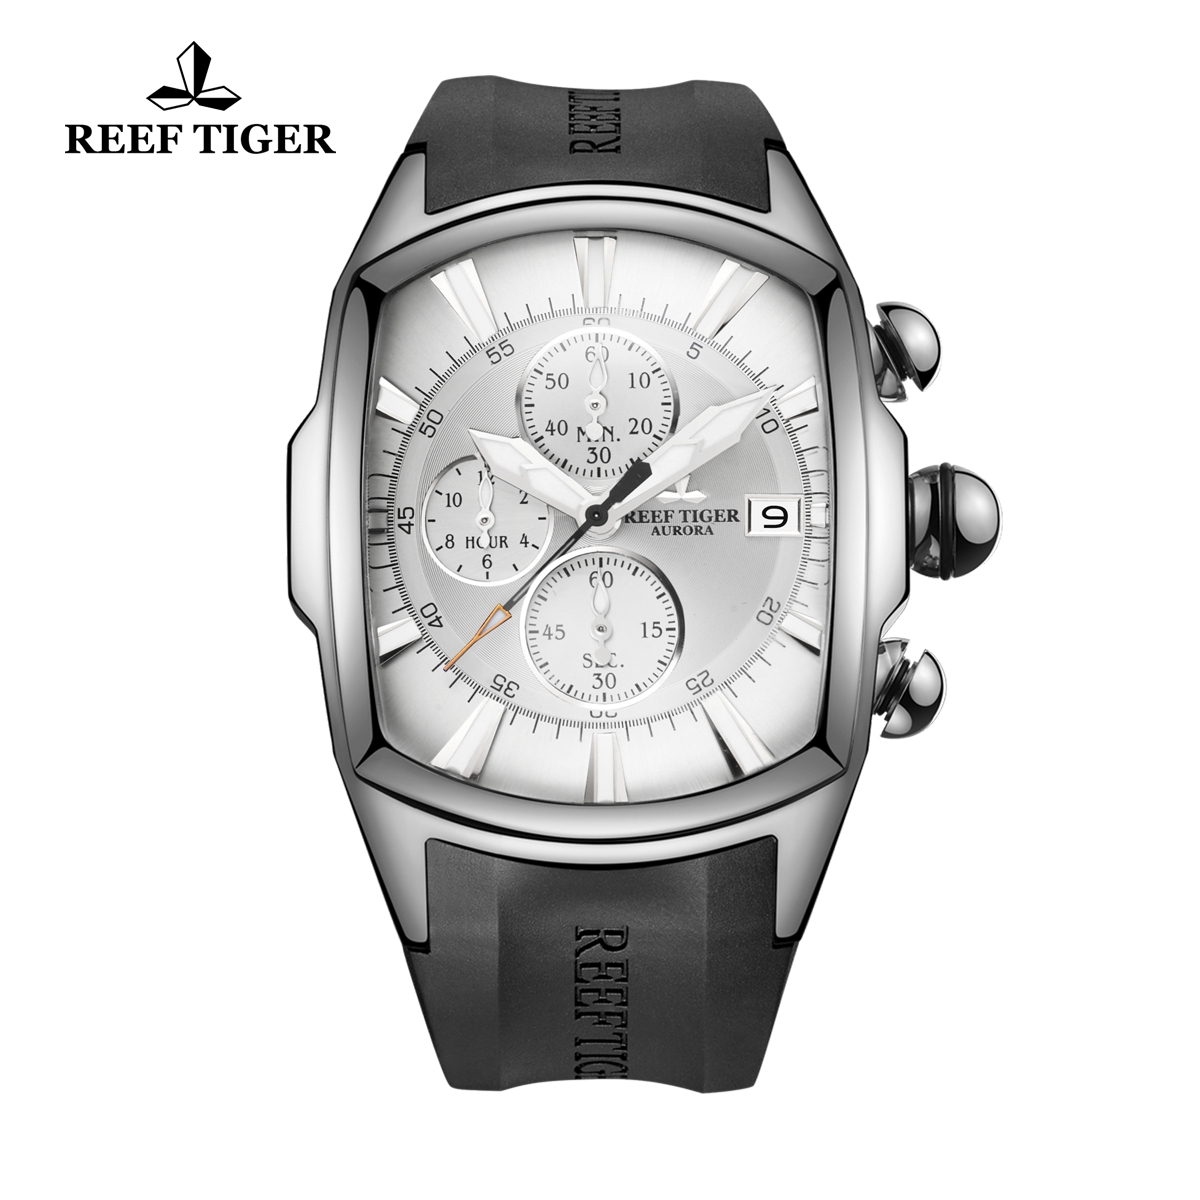 Reef Tiger Tank Men's Watch Steel Black Rubber Strap White Dial Quartz Watch RGA3069-T-YWB